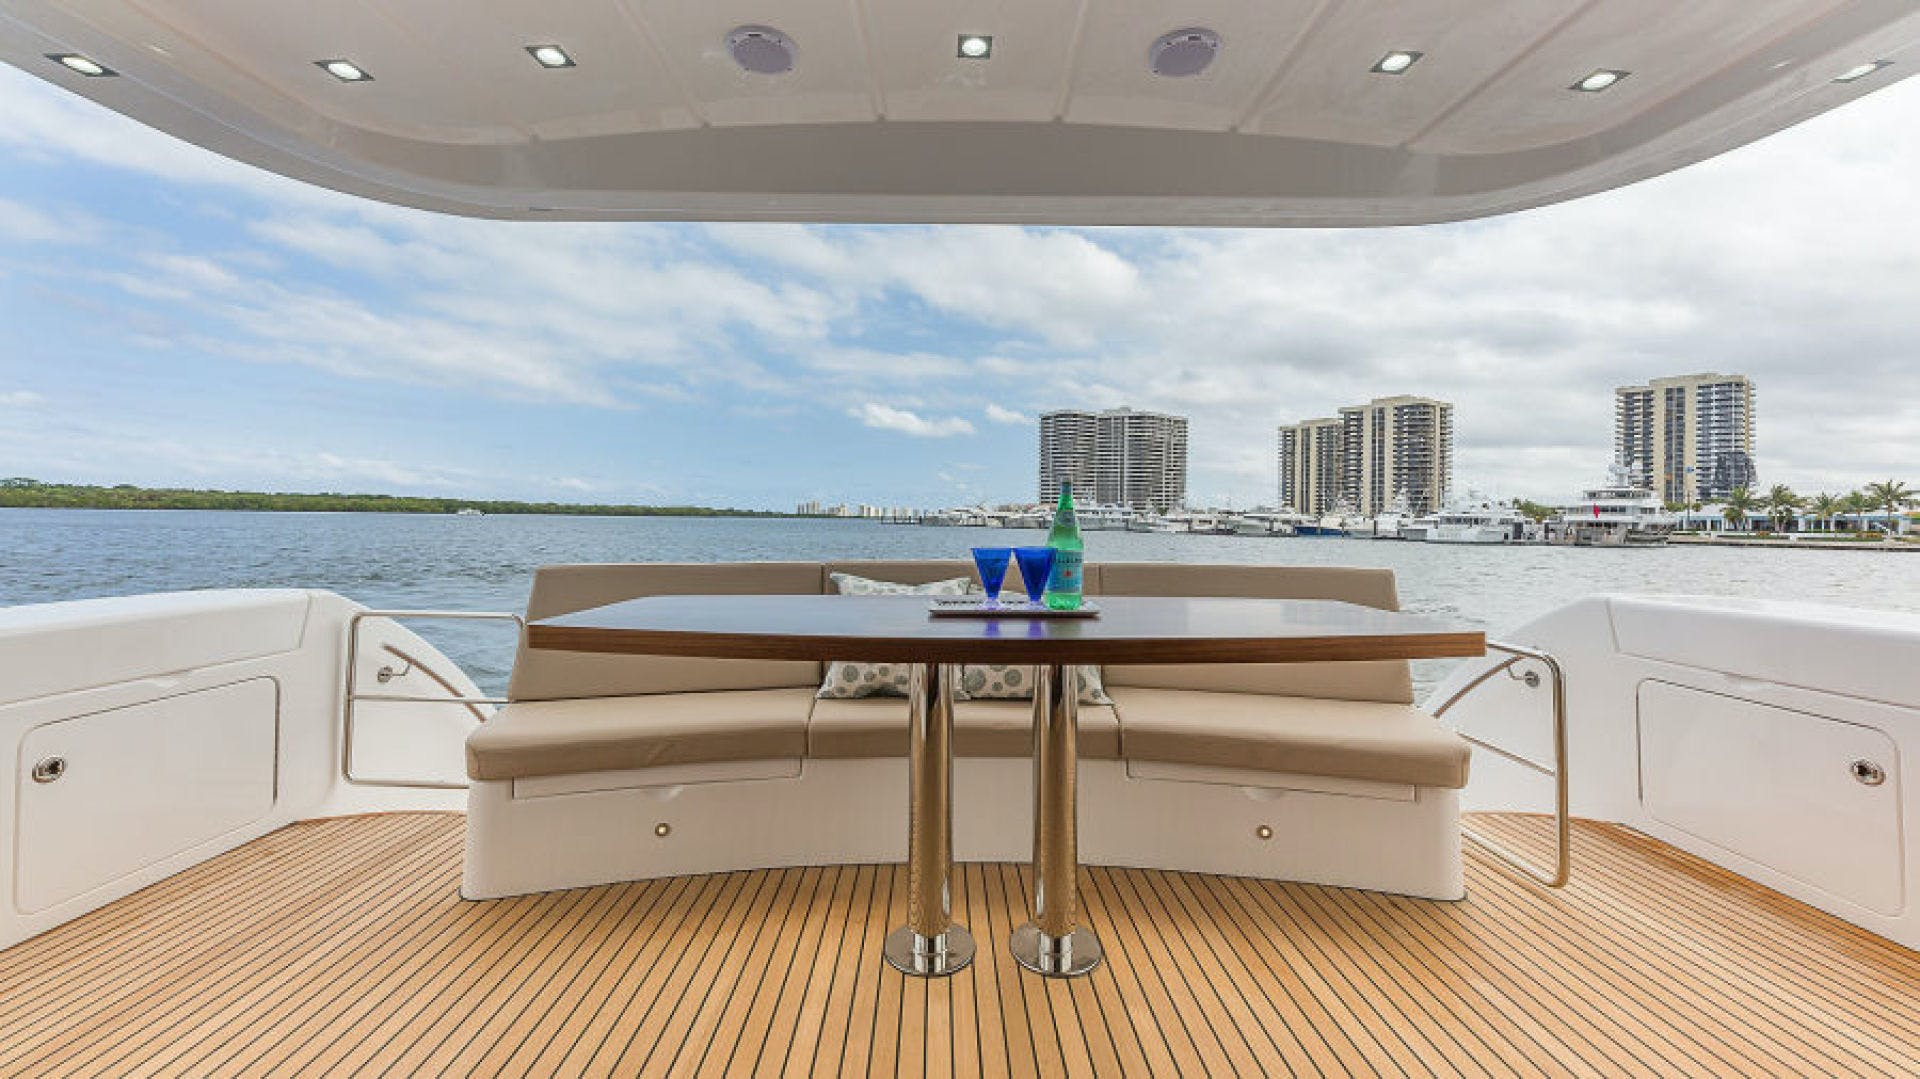 2021 Dyna Yachts 68' 68 Skylounge  | Picture 3 of 46